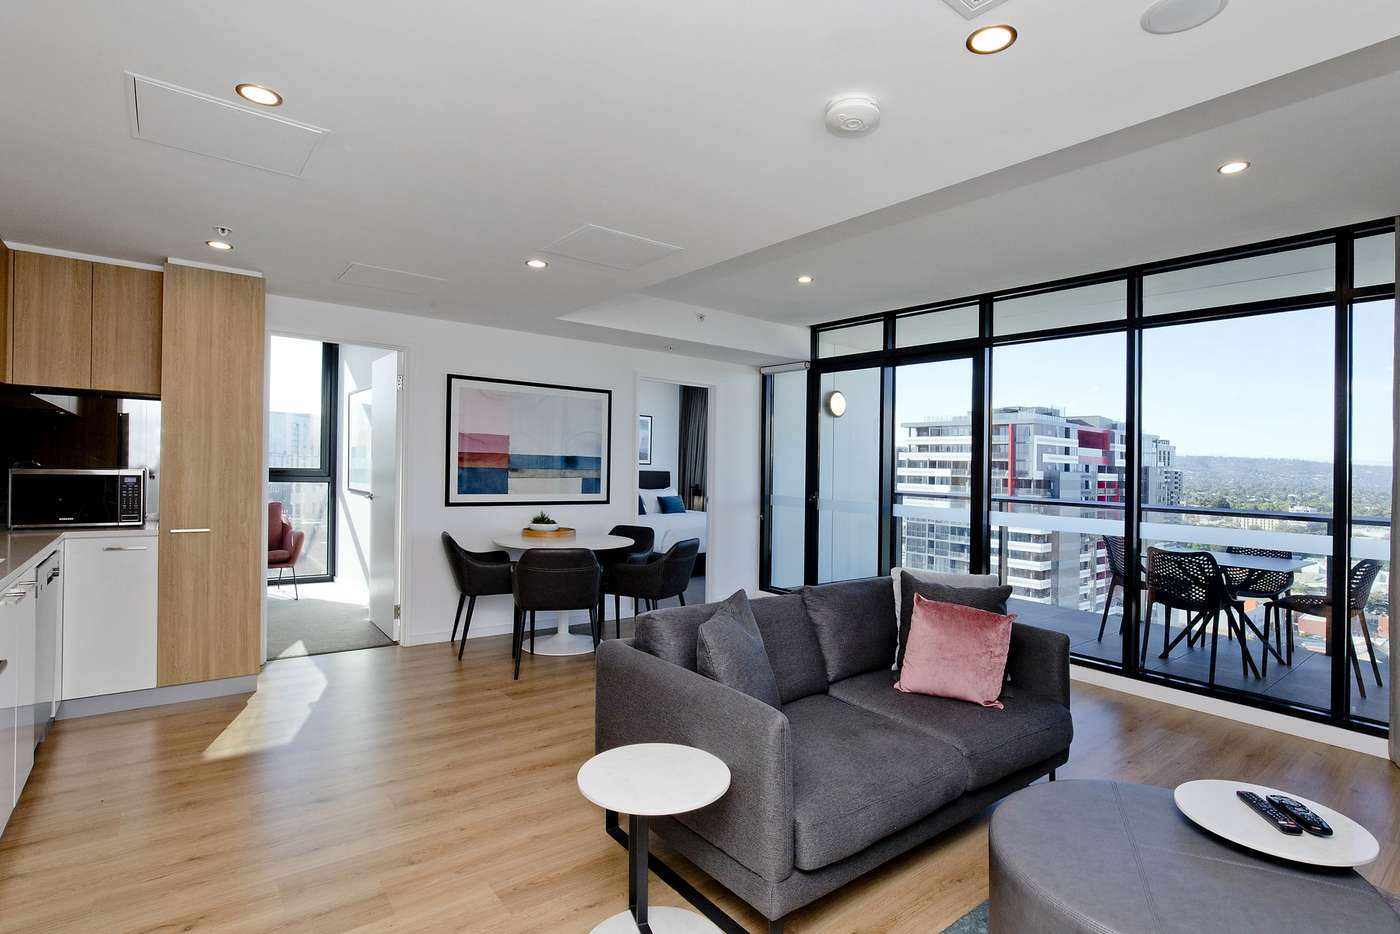 Fifth view of Homely apartment listing, 1905/180 Franklin Street, Adelaide SA 5000